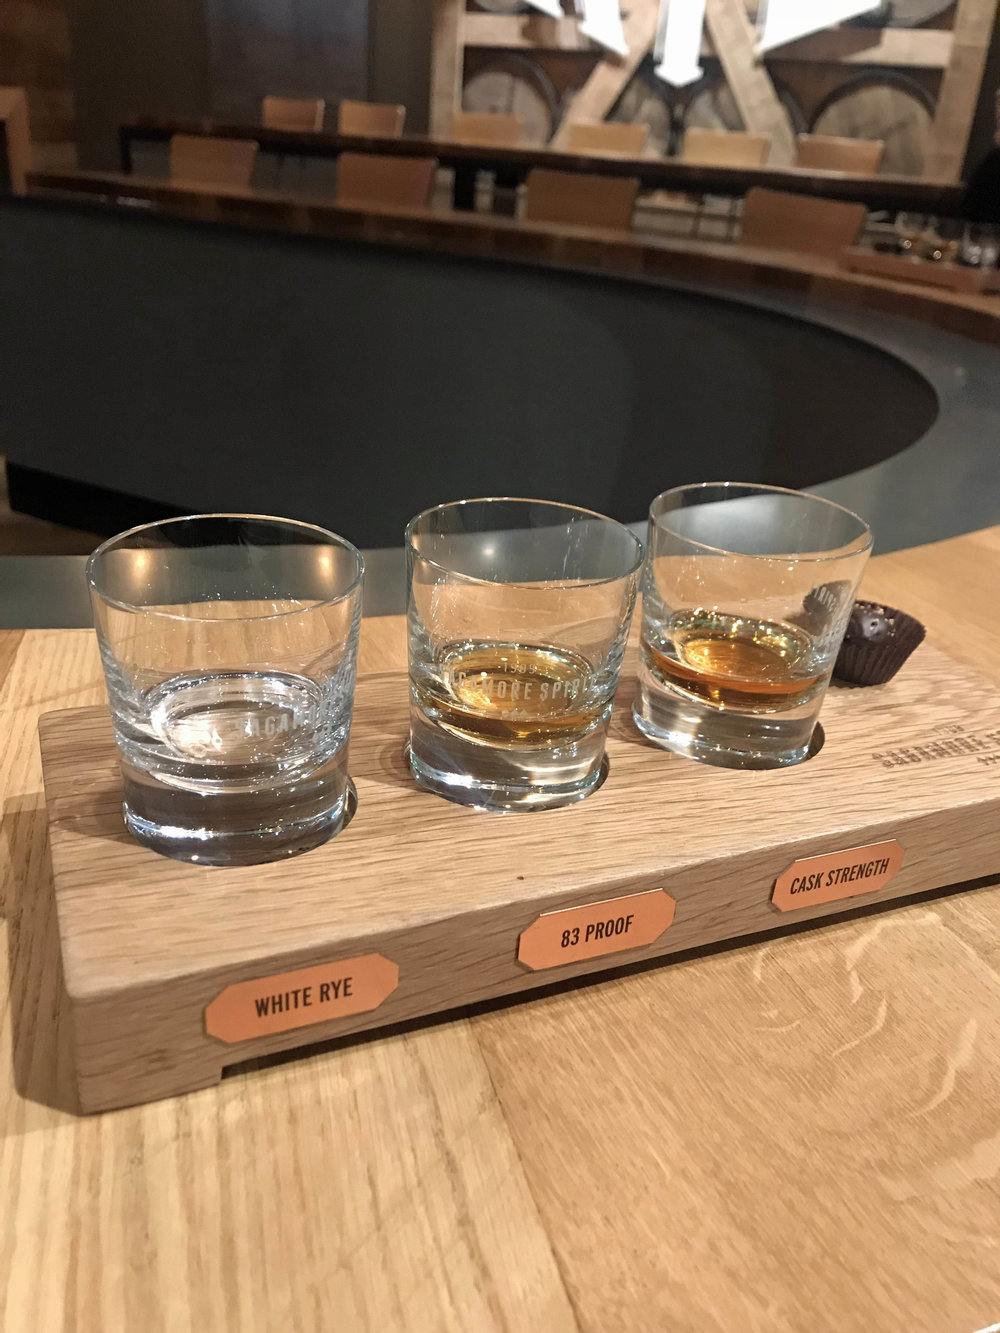 5 Reasons to Staycation in MD - Sagamore Distillery Tour | Pish Posh Perfect